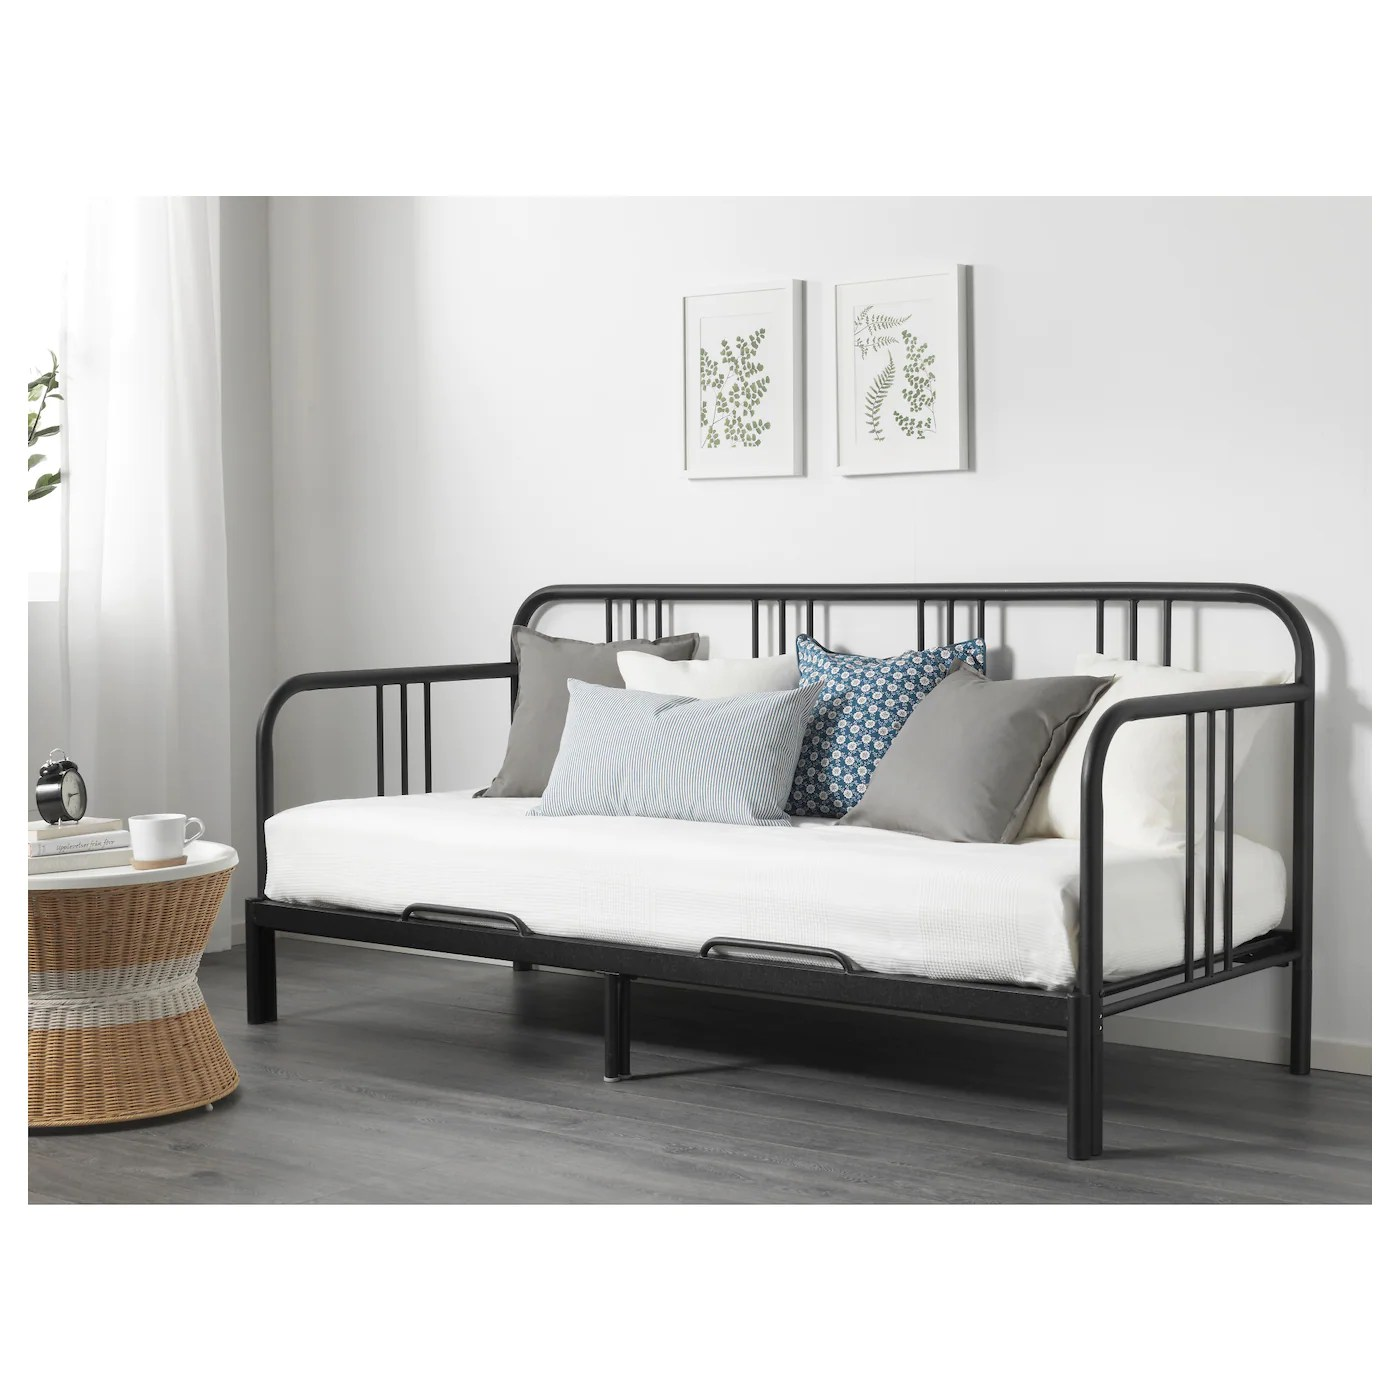 Test Motorbetriebene Lattenroste Lattenrost 80x200 Ikea Home And Moven